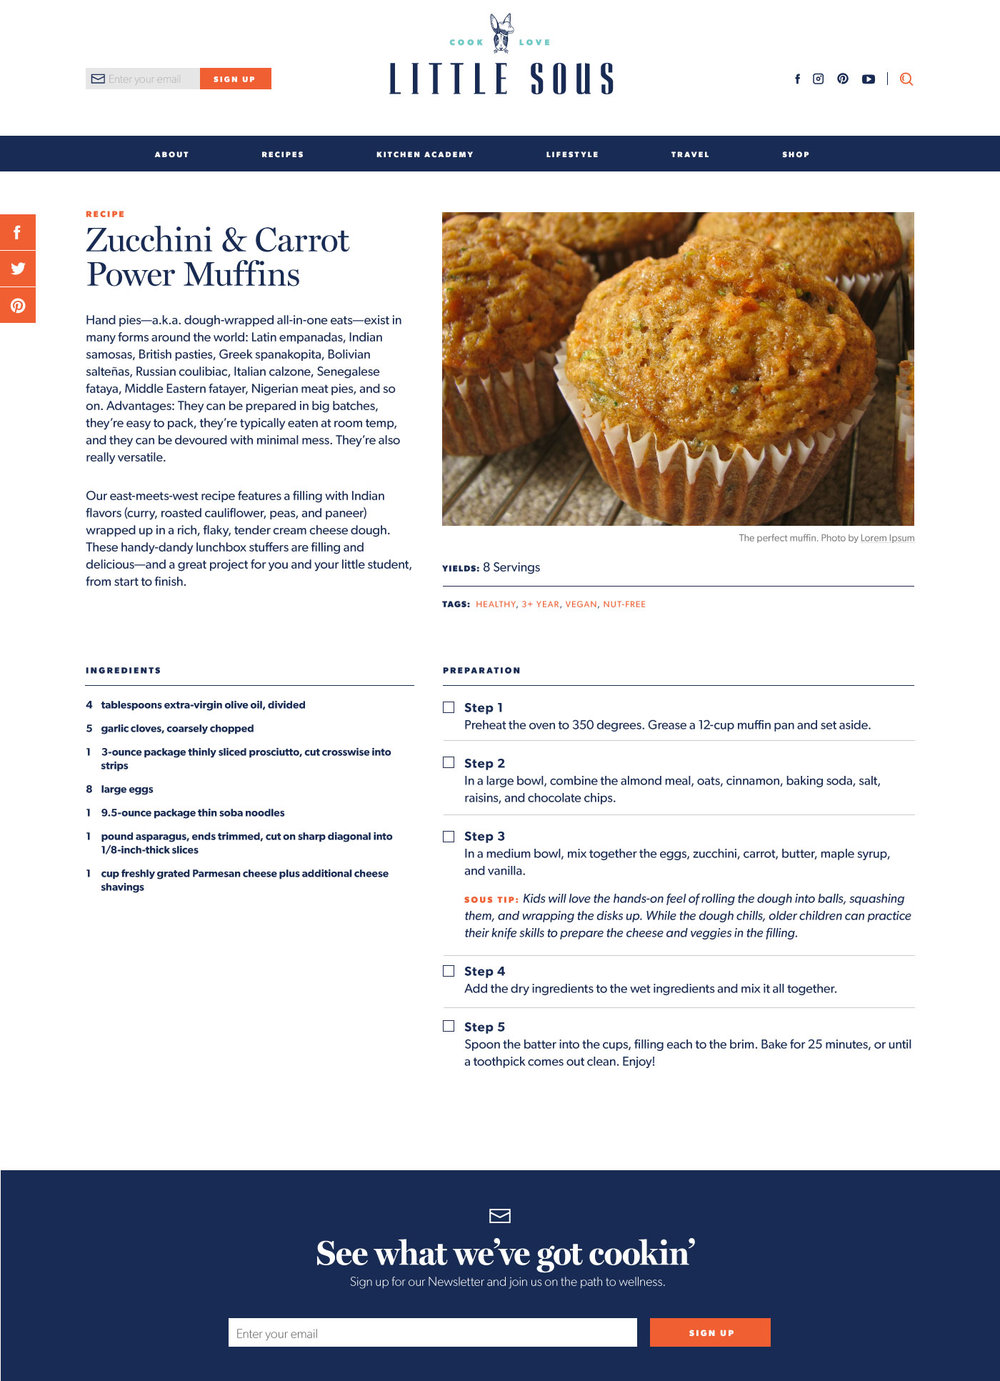 Rethinking Recipes - Personally, I need a recipe when I'm in the kitchen. I often search for recipes on my phone or tablet and follow along while cooking. Immediately I had front and back end ideas on how to improve the functionality. Moving ingredients side by side with the instructions, and creating a collapsable step by step feature reduces the need to scroll up and down and constantly losing your place. The back end of the site uses custom fields for the ingredients, units, and measurements to make future features, such as doubling recipes a cinch.